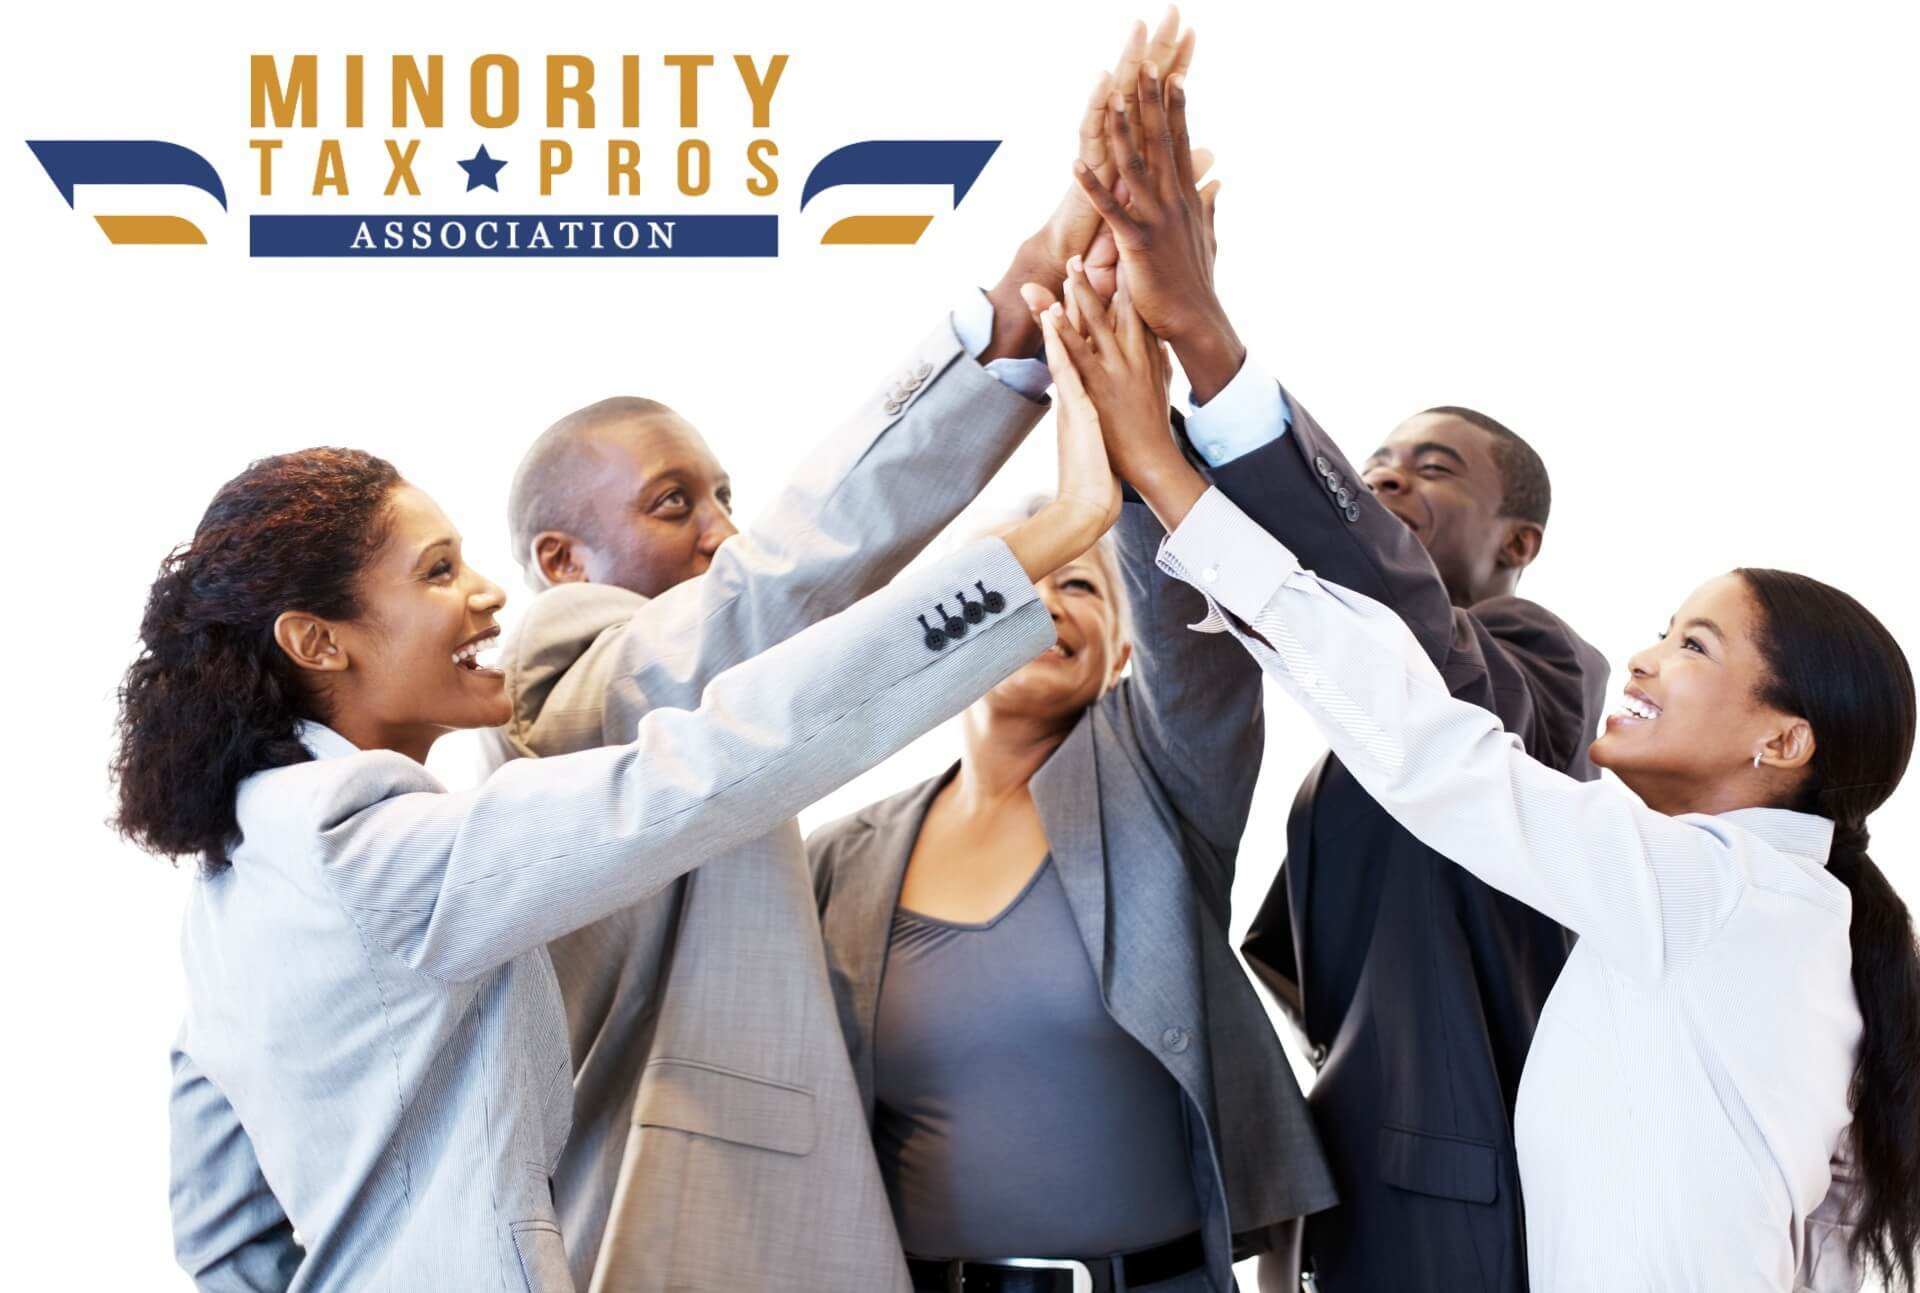 Minority Tax Pros is a proud leader in the income tax preparation service industry